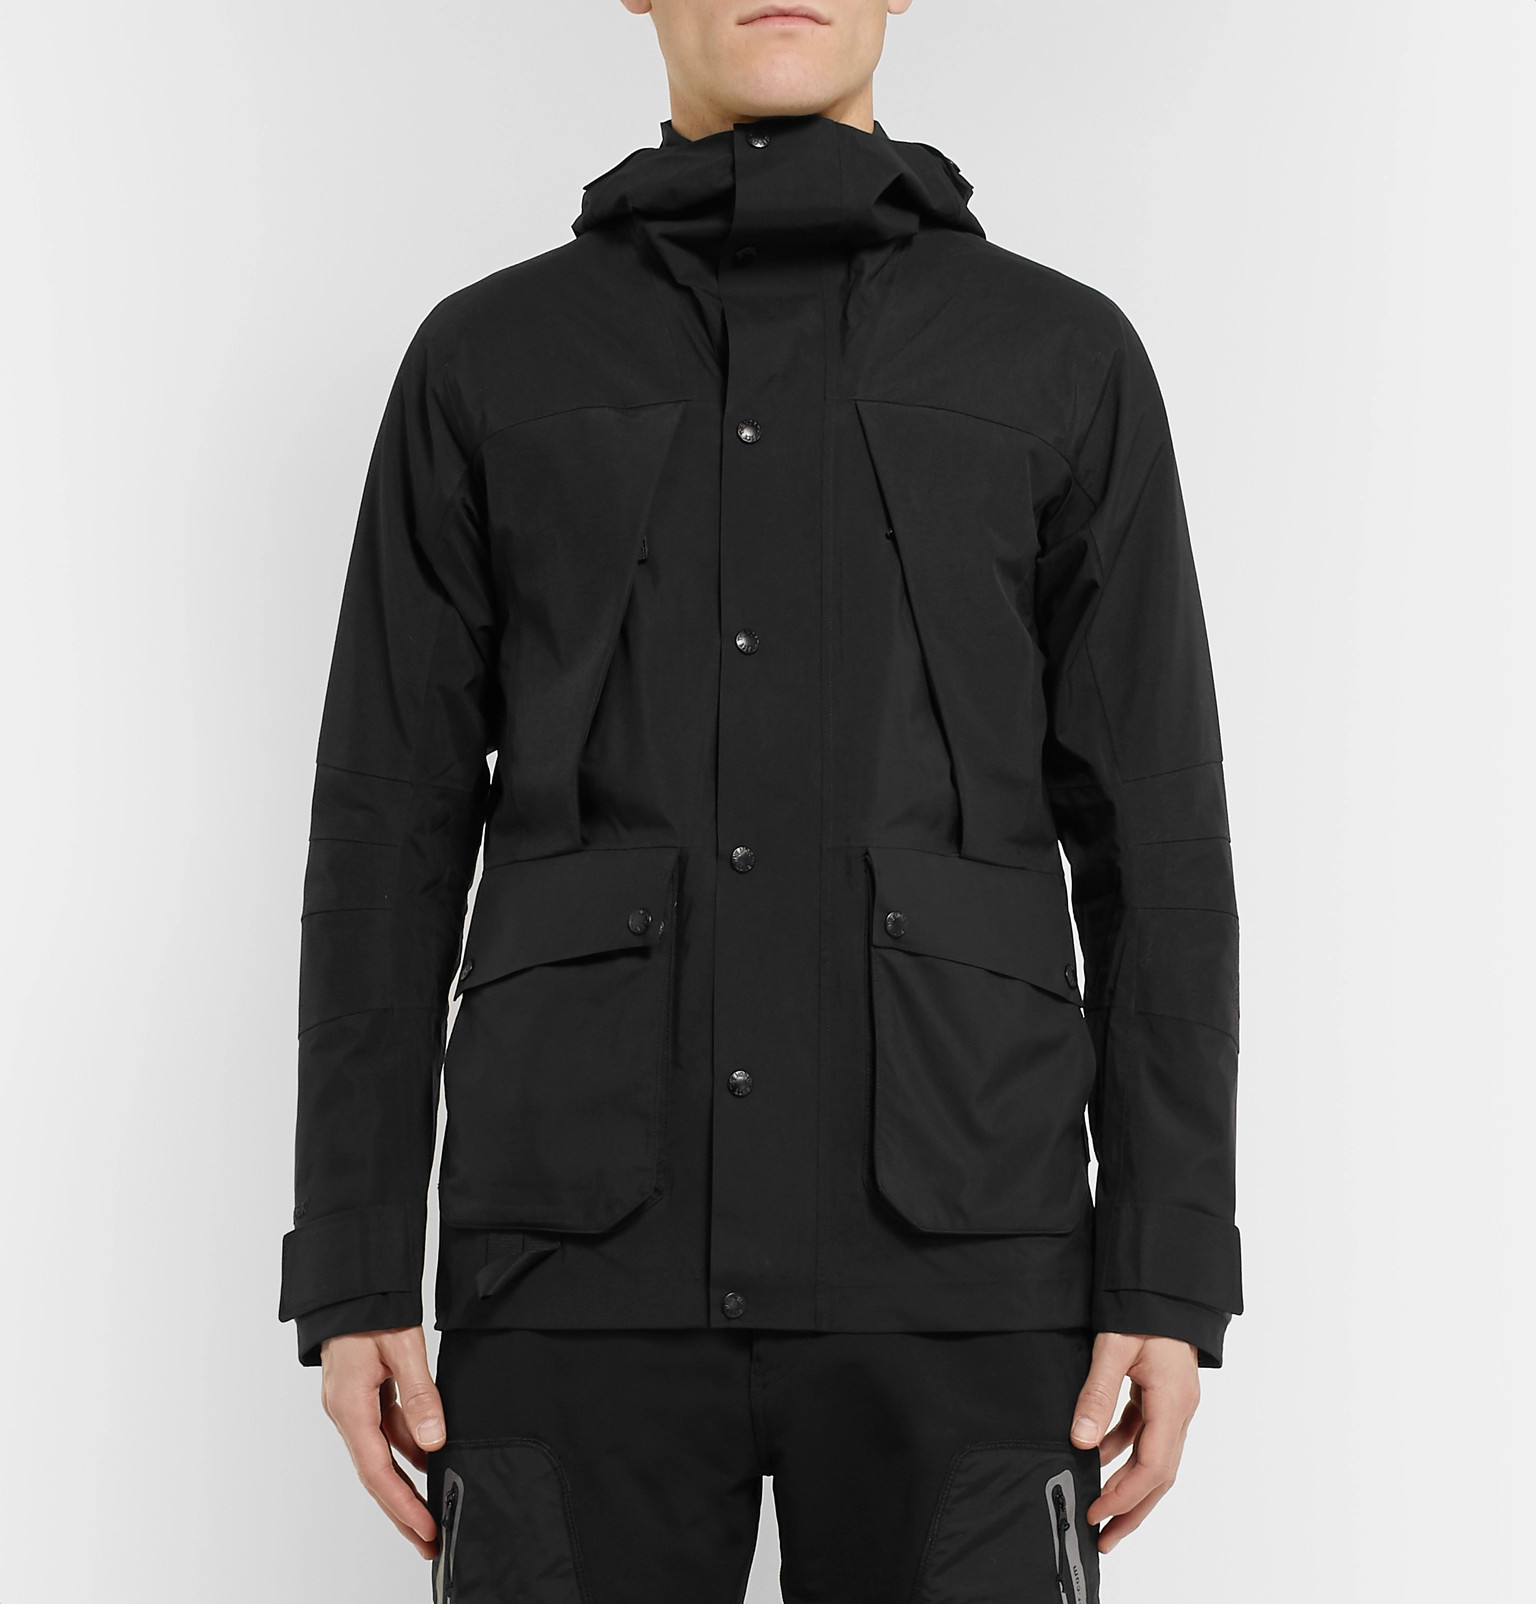 75686269b The North Face - Black Series Urban Mountain Light GORE-TEX and ...